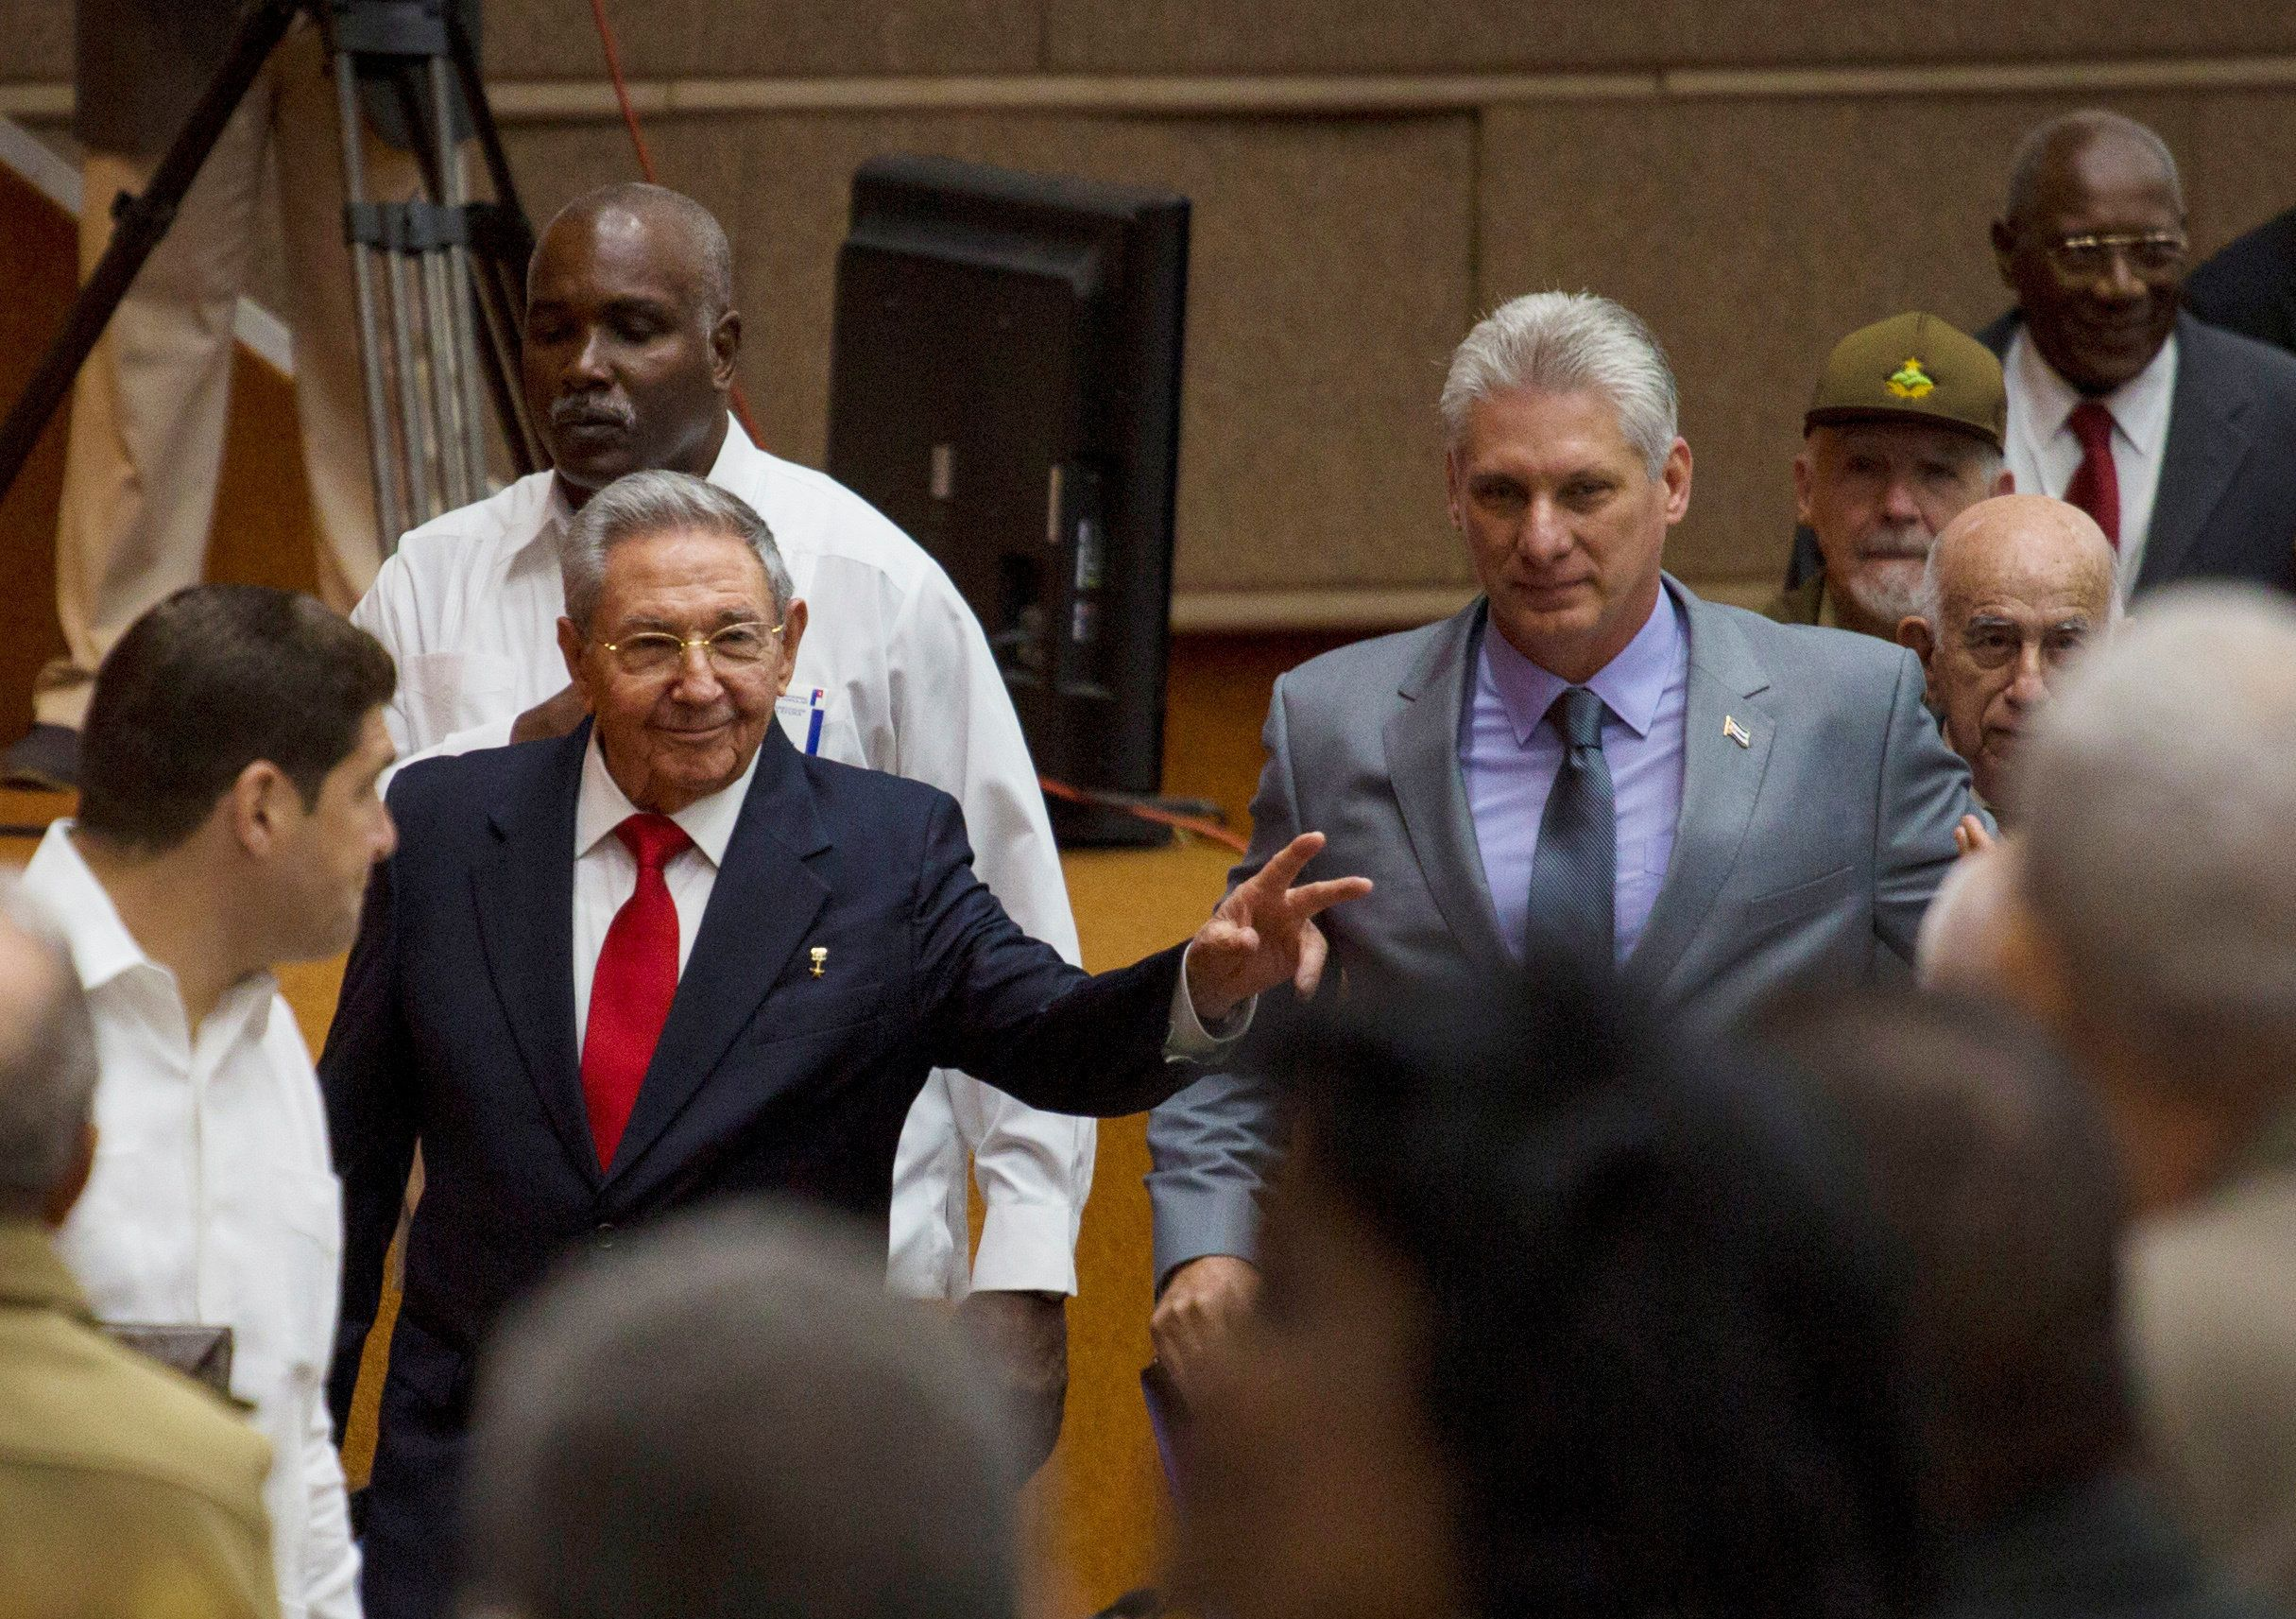 Cuba's President Raul Castro (C-L) and First Vice-President Miguel Diaz-Canel (C-R) arrive for a session of the National Assembly in Havana, Cuba, April 18, 2018.  Irene Perez/Courtesy of Cubadebate/Handout via Reuters. ATTENTION EDITORS - THIS PICTURE WAS PROVIDED BY A THIRD PARTY.